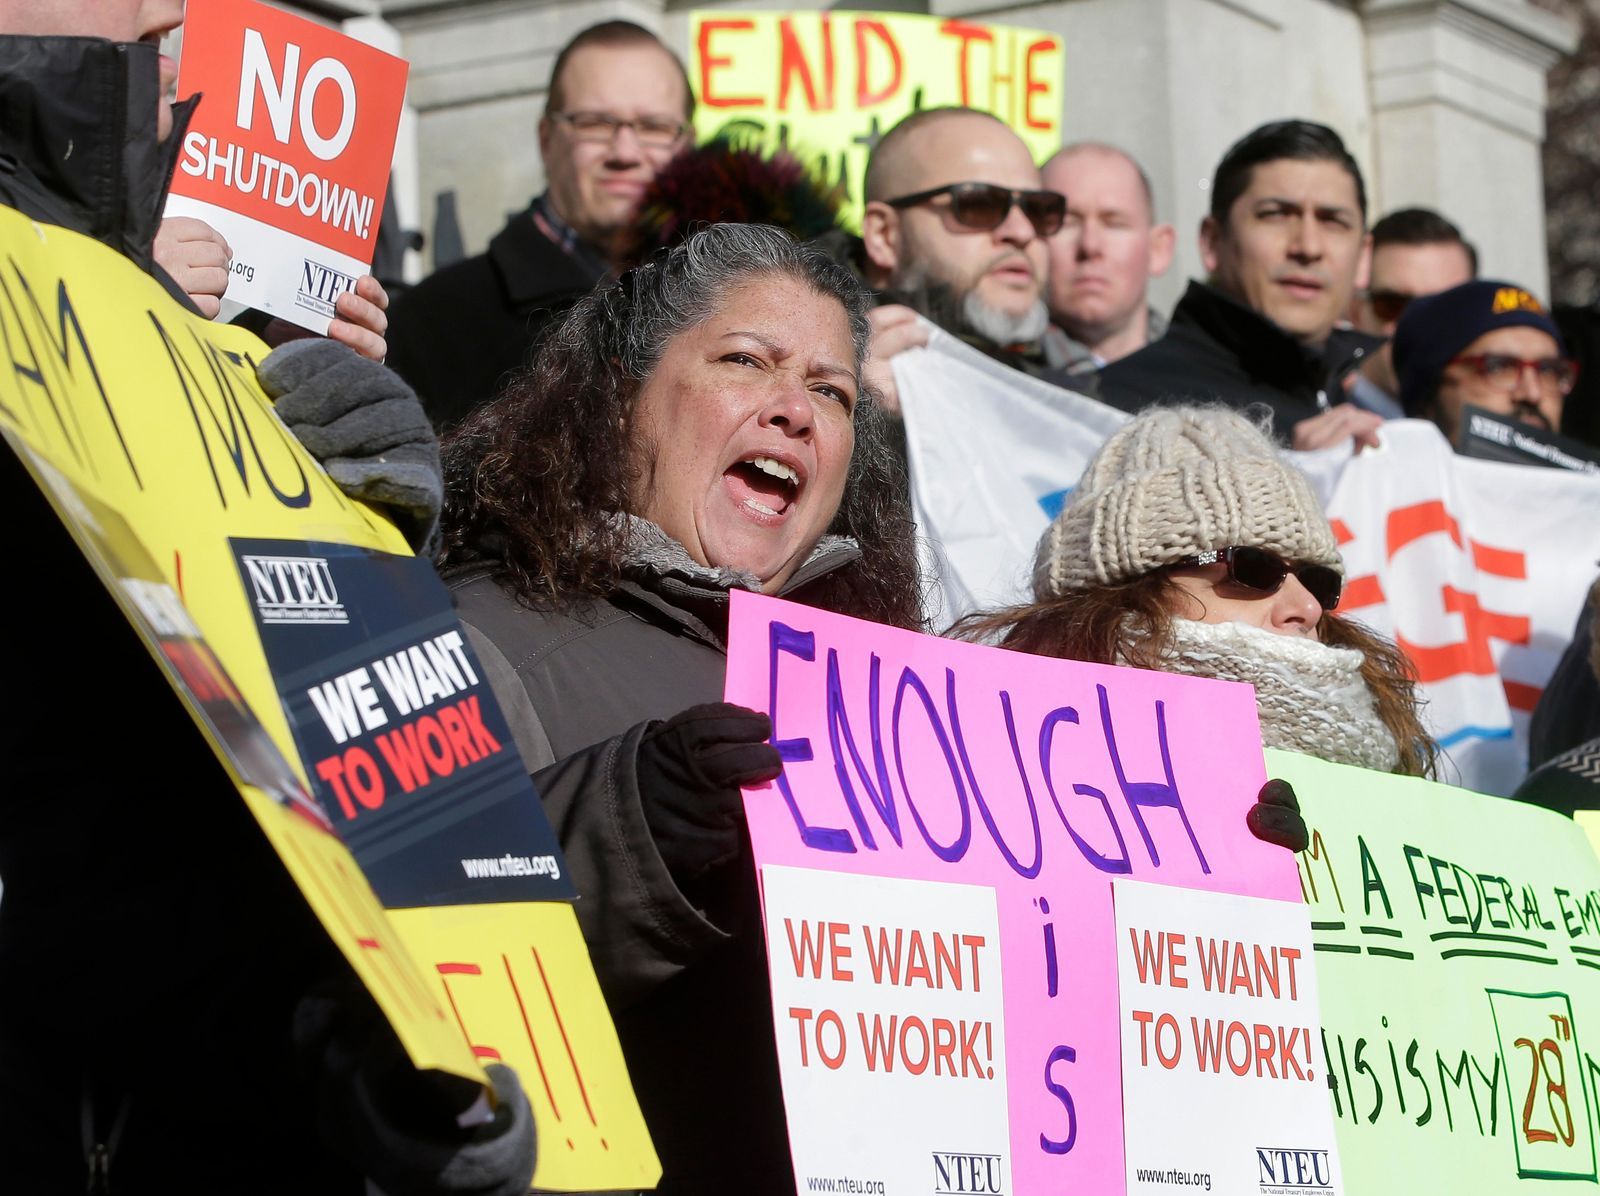 Internal Revenue Service employee Mary Maldonado, of Dracut, Mass., center, displays a placard during a rally by federal employees and supporters, Thursday, Jan. 17, 2019, in front of the Statehouse, in Boston, held to call for an end of the partial shutdown of the federal government. (AP Photo/Steven Senne)